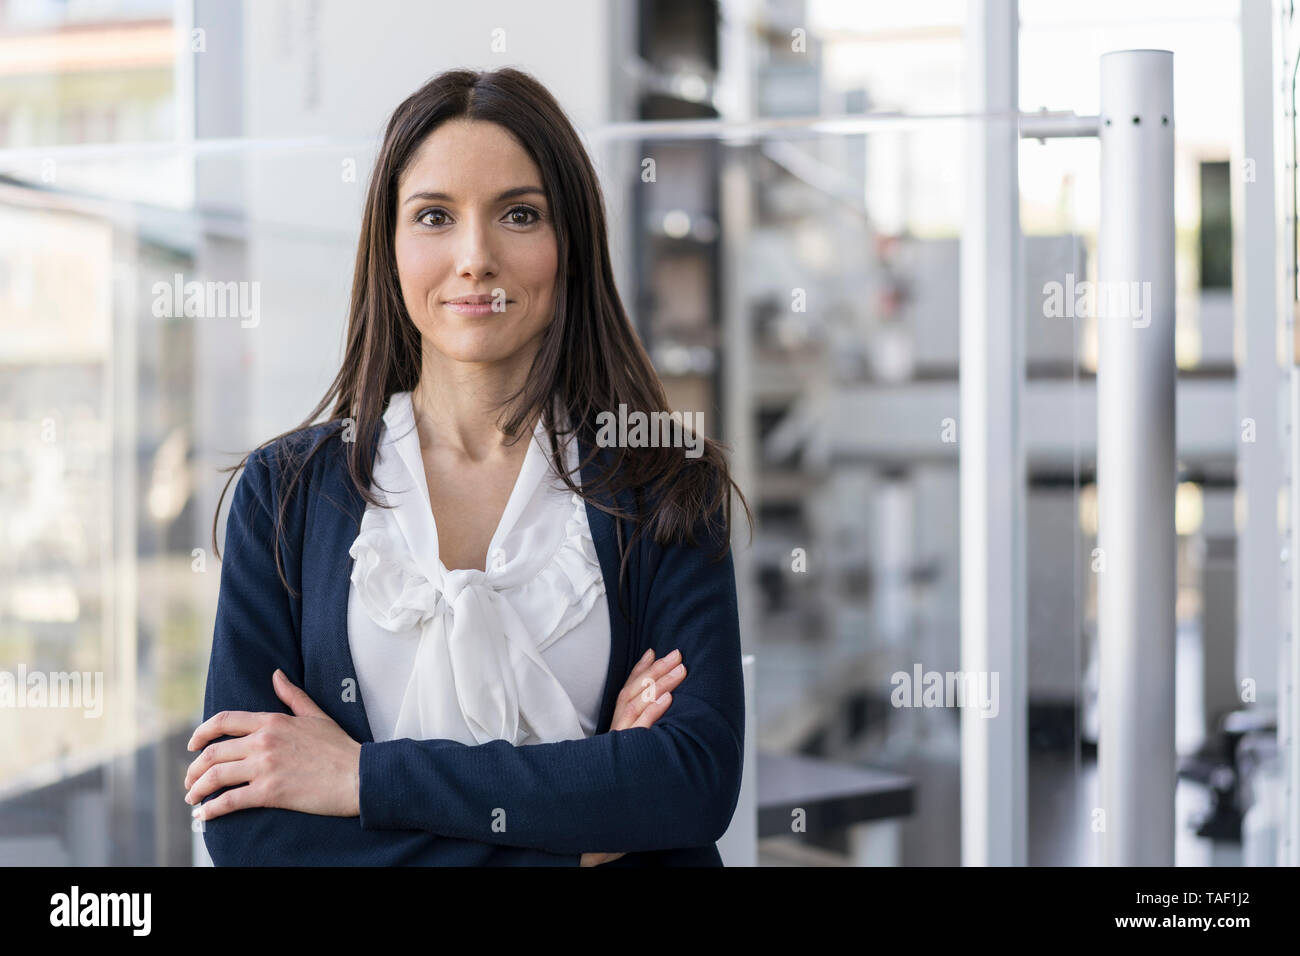 Portrait of smiling businesswoman in a modern factory - Stock Image